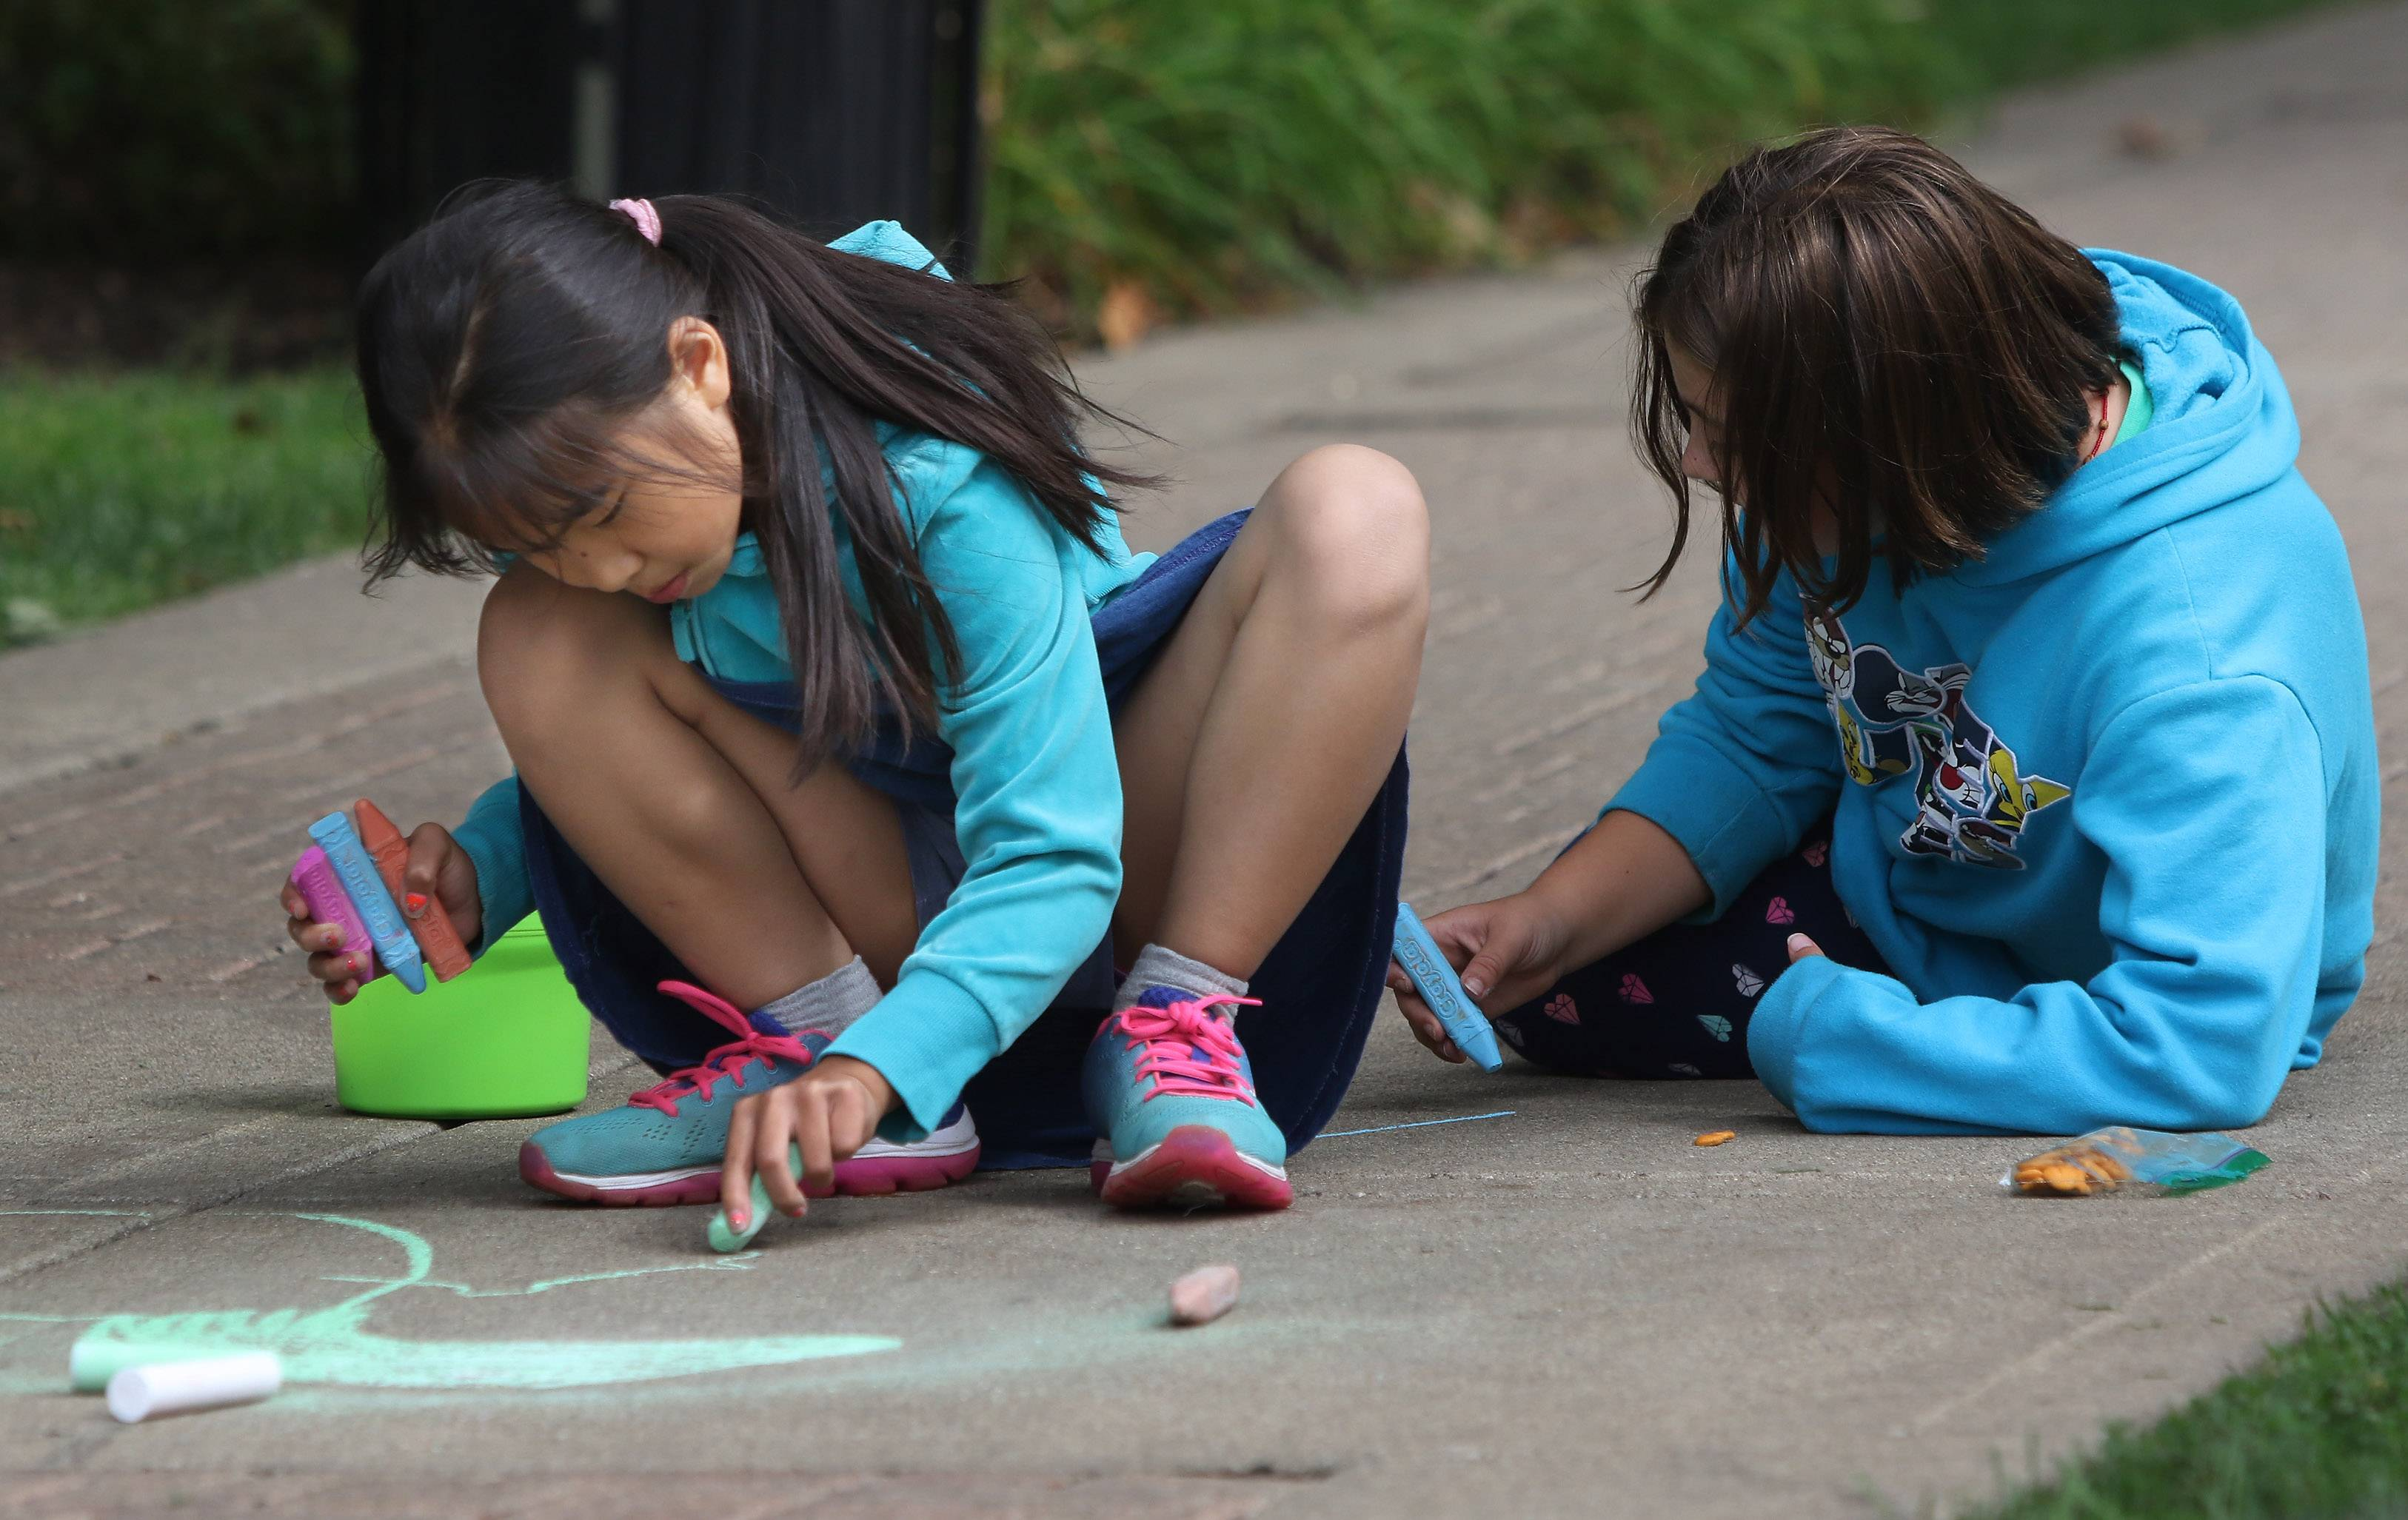 Rockland School fourth-graders Amy Huang, left, and Sorelle Foulke draw on the sidewalk around Cook Park in Libertyville on Thursday. Libertyville Elementary District 70 fourth- and fifth-graders participated in the Chalk Walk project as part of the national character-building program Character Counts!